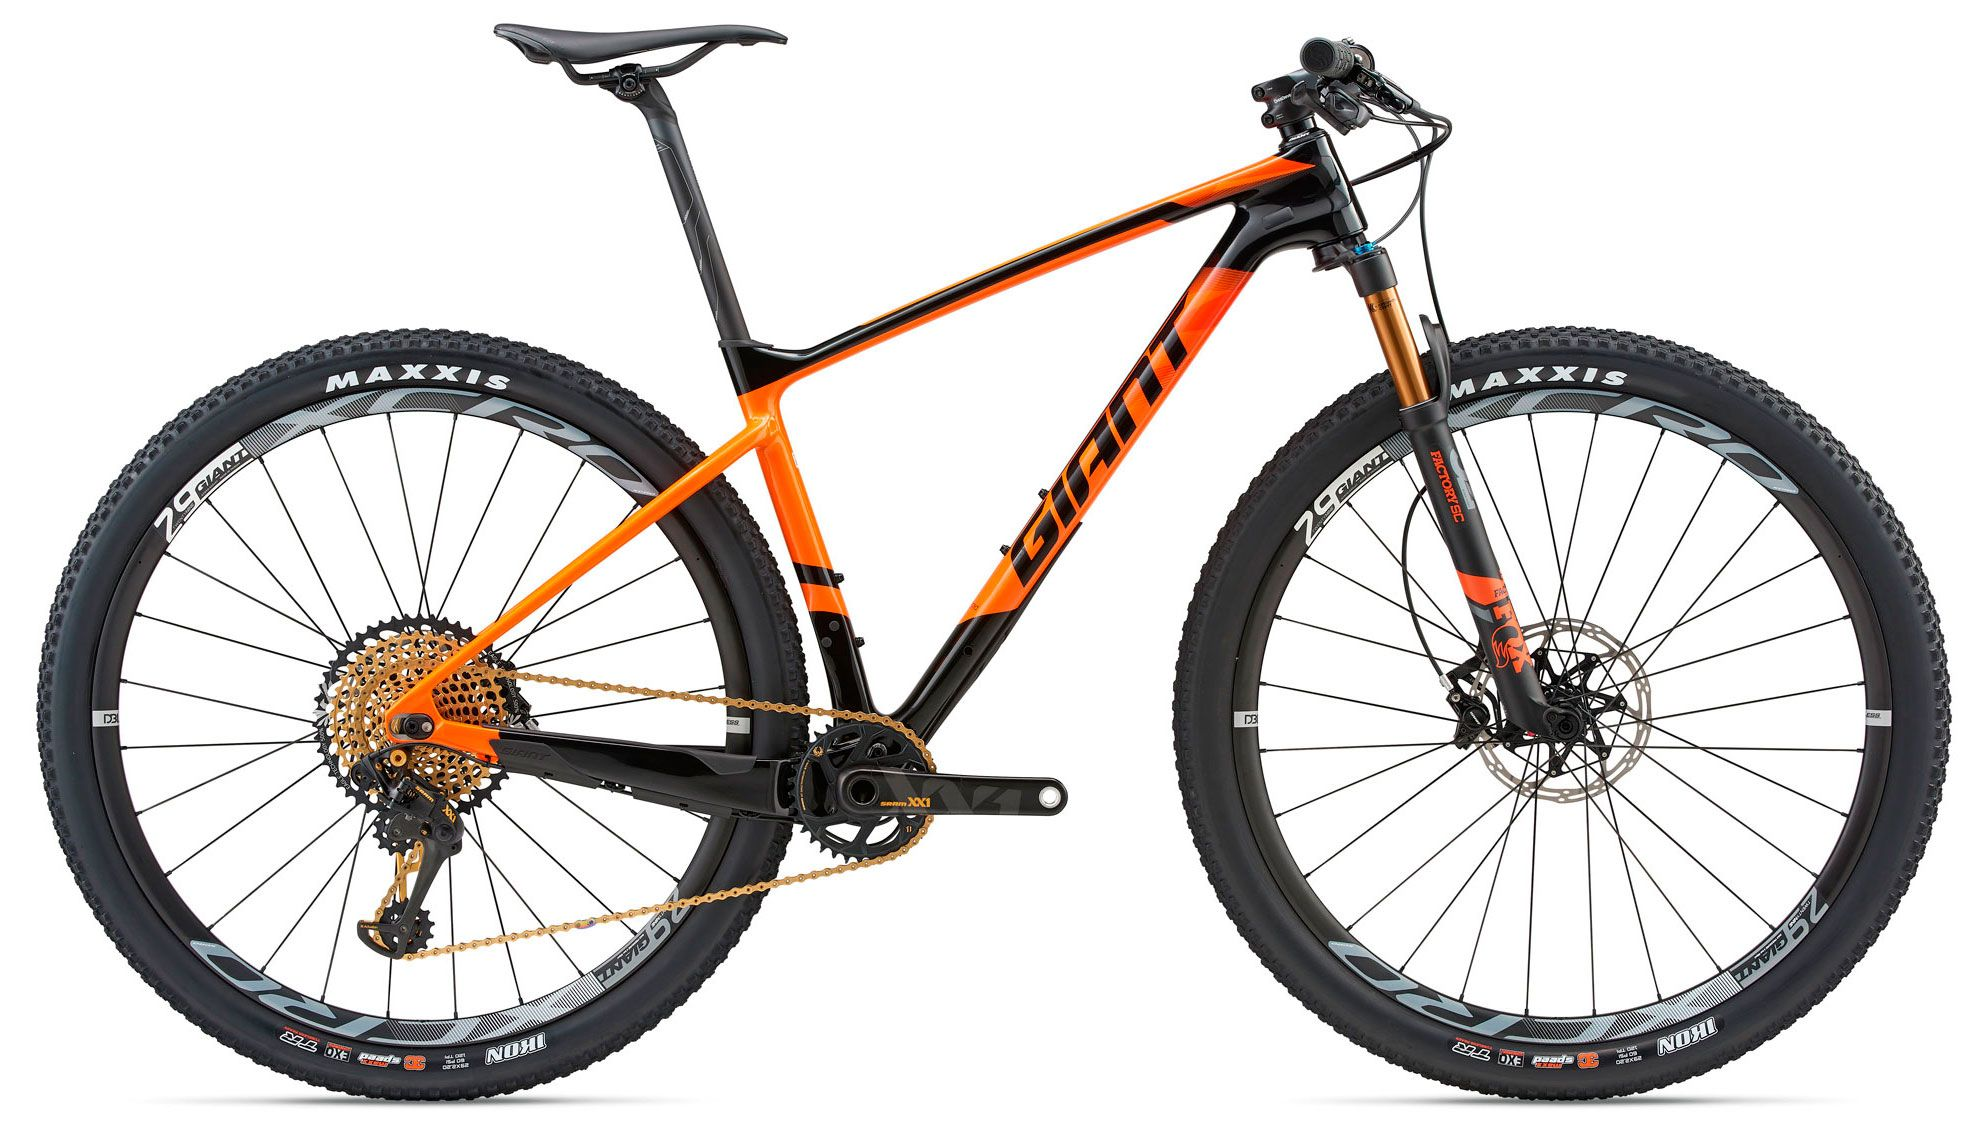 Велосипед Giant XTC Advanced 29er 0 2018 велосипед giant xtc advanced 27 5 2 2014